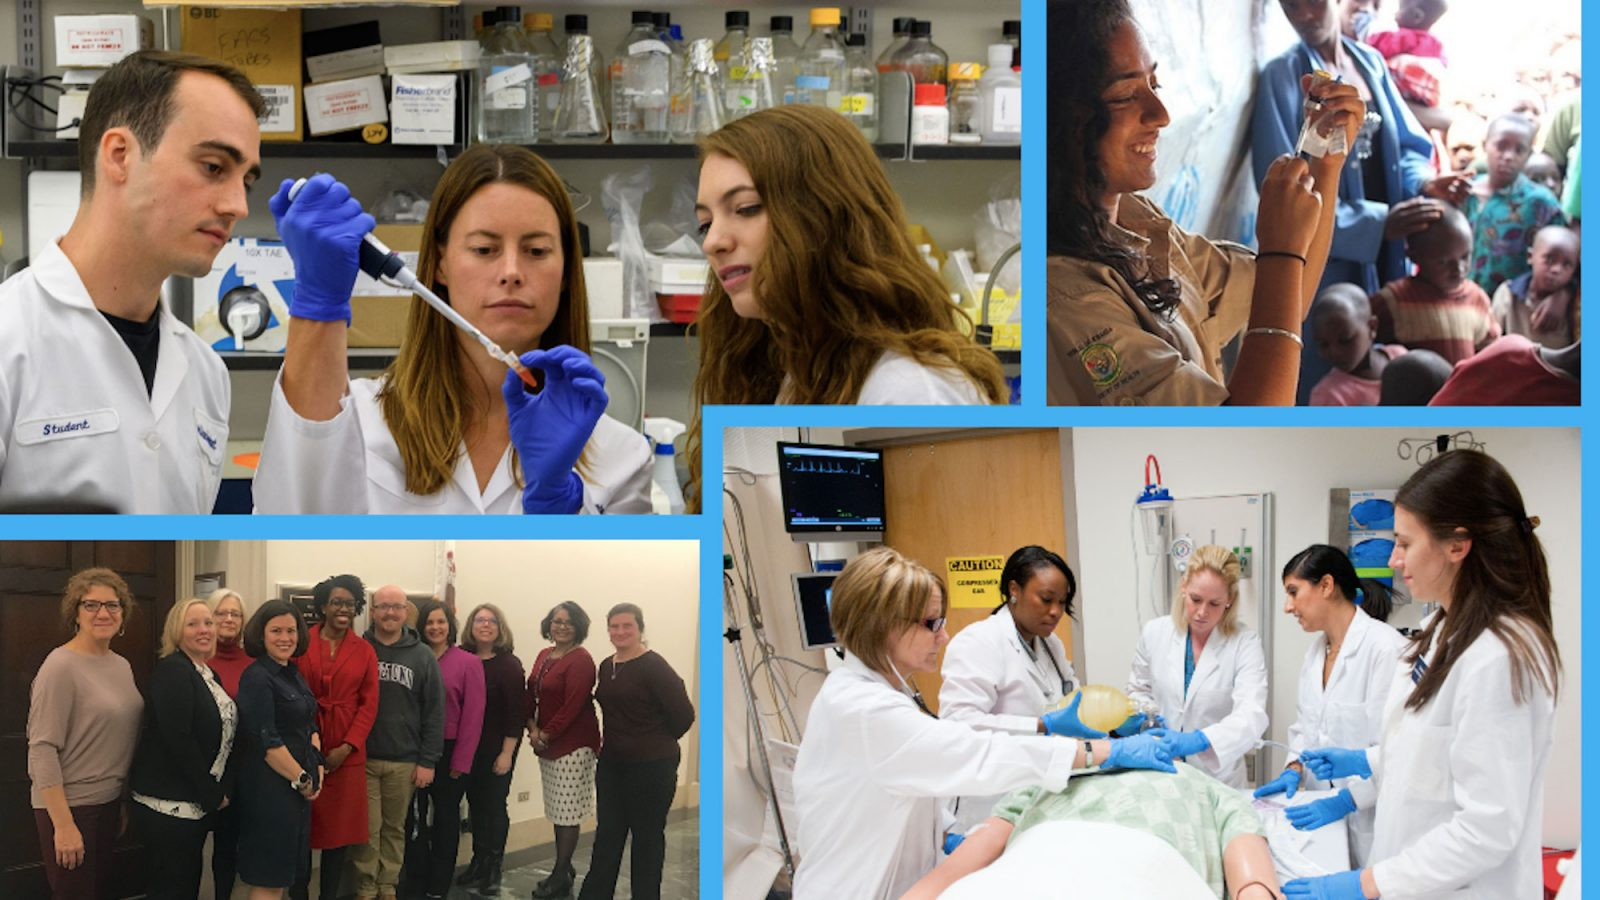 A collage of photos show students working in the labs and caring for patients.